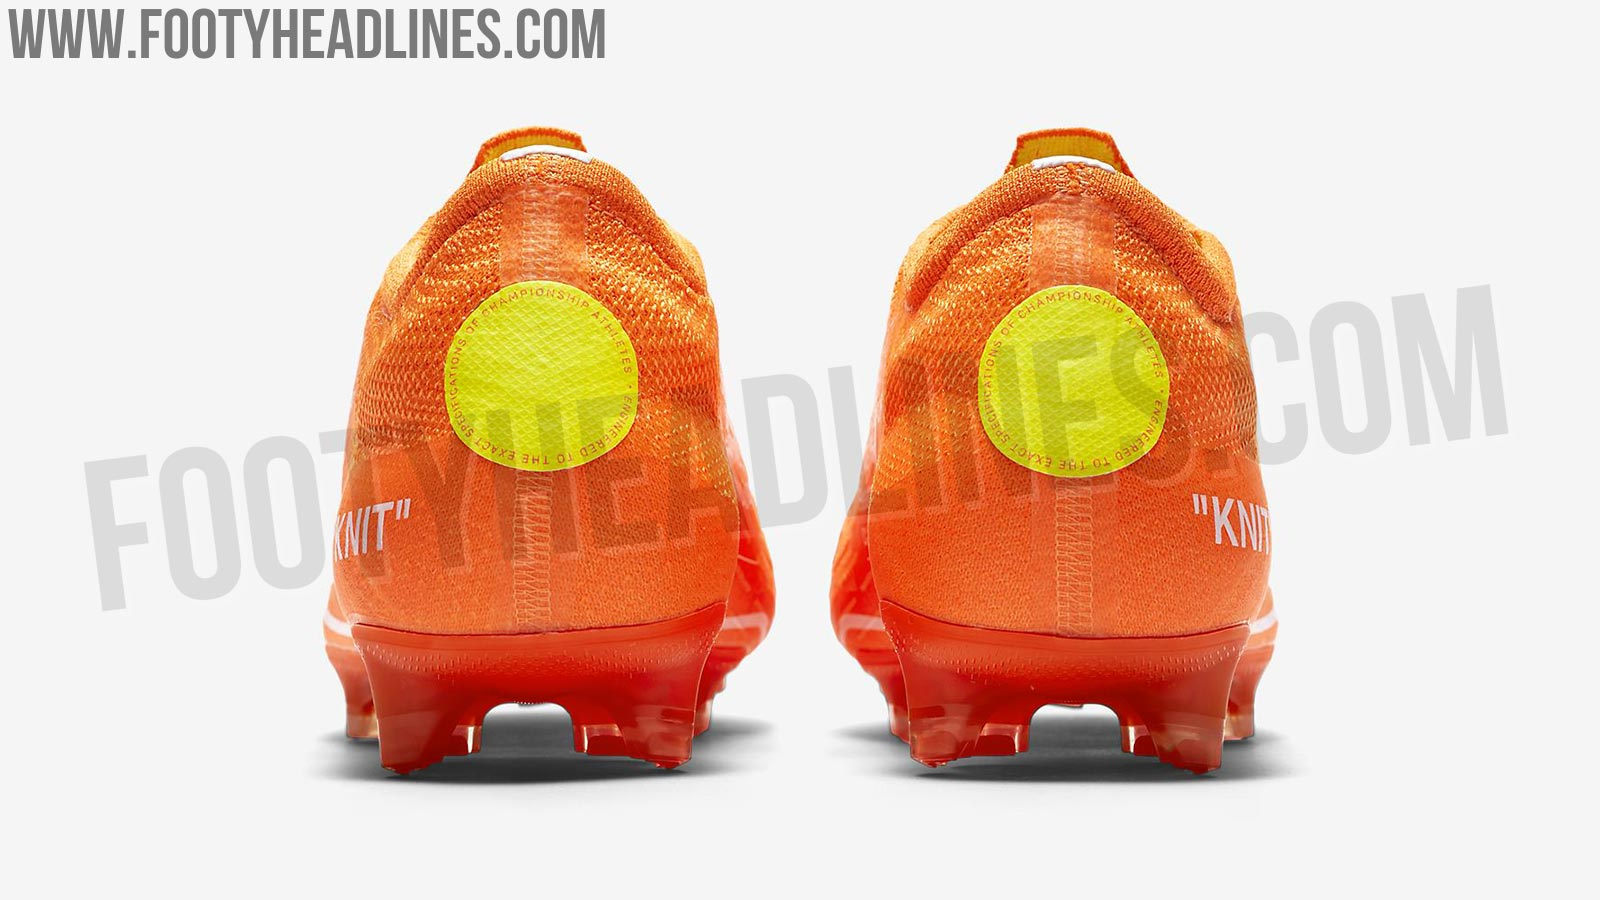 885f3d54c2a LEAK + INFO: Nike x Off-White Football Collection Ahead of 2018 ...